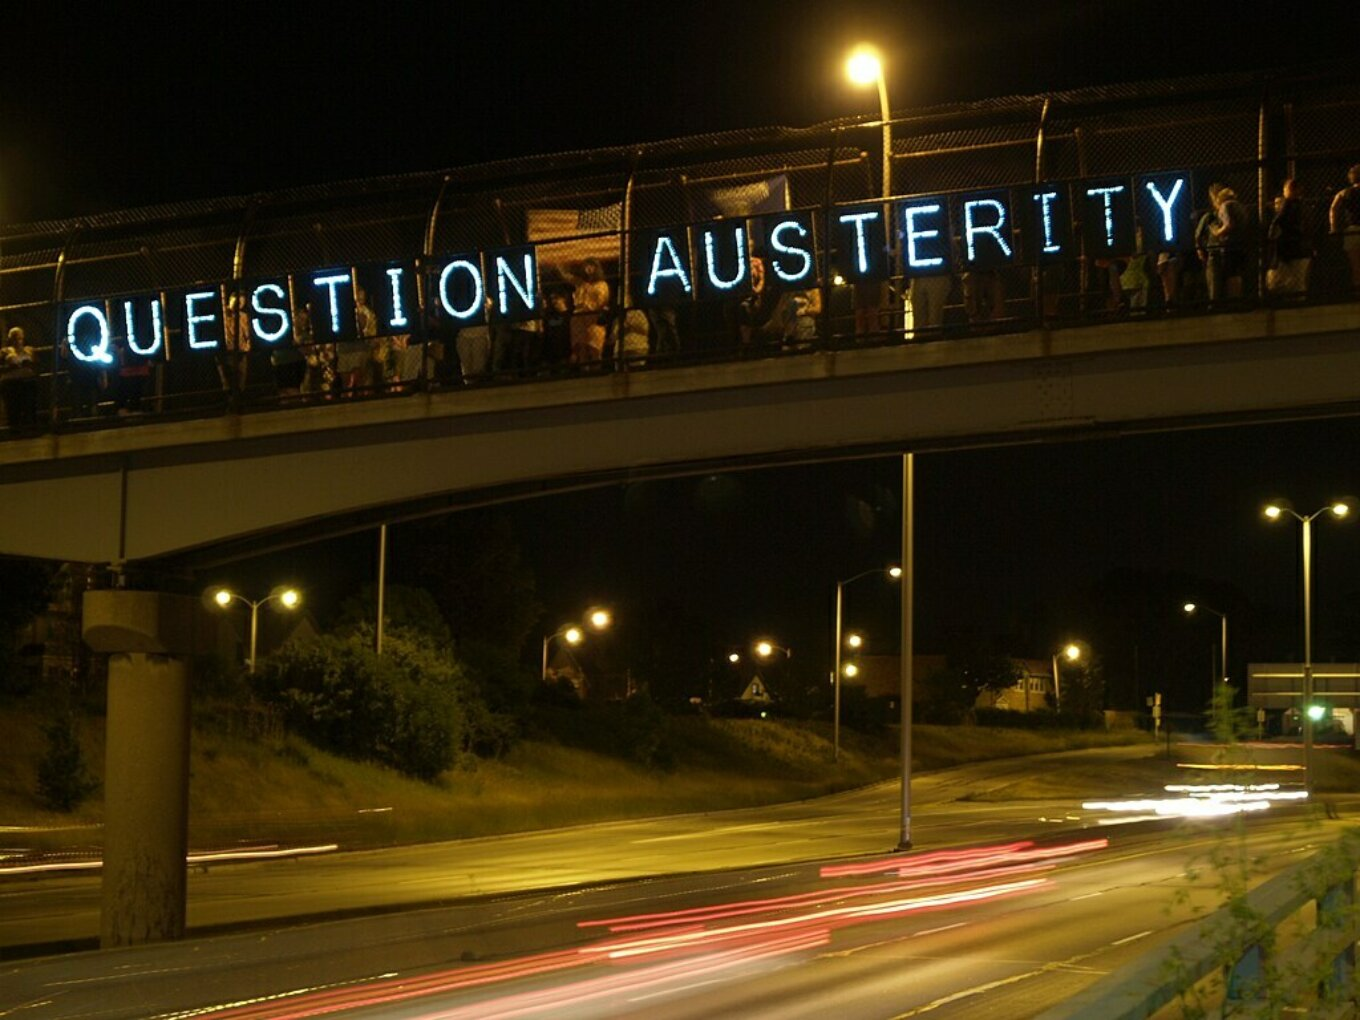 The words Question Austerity in lights on a motorway bridge